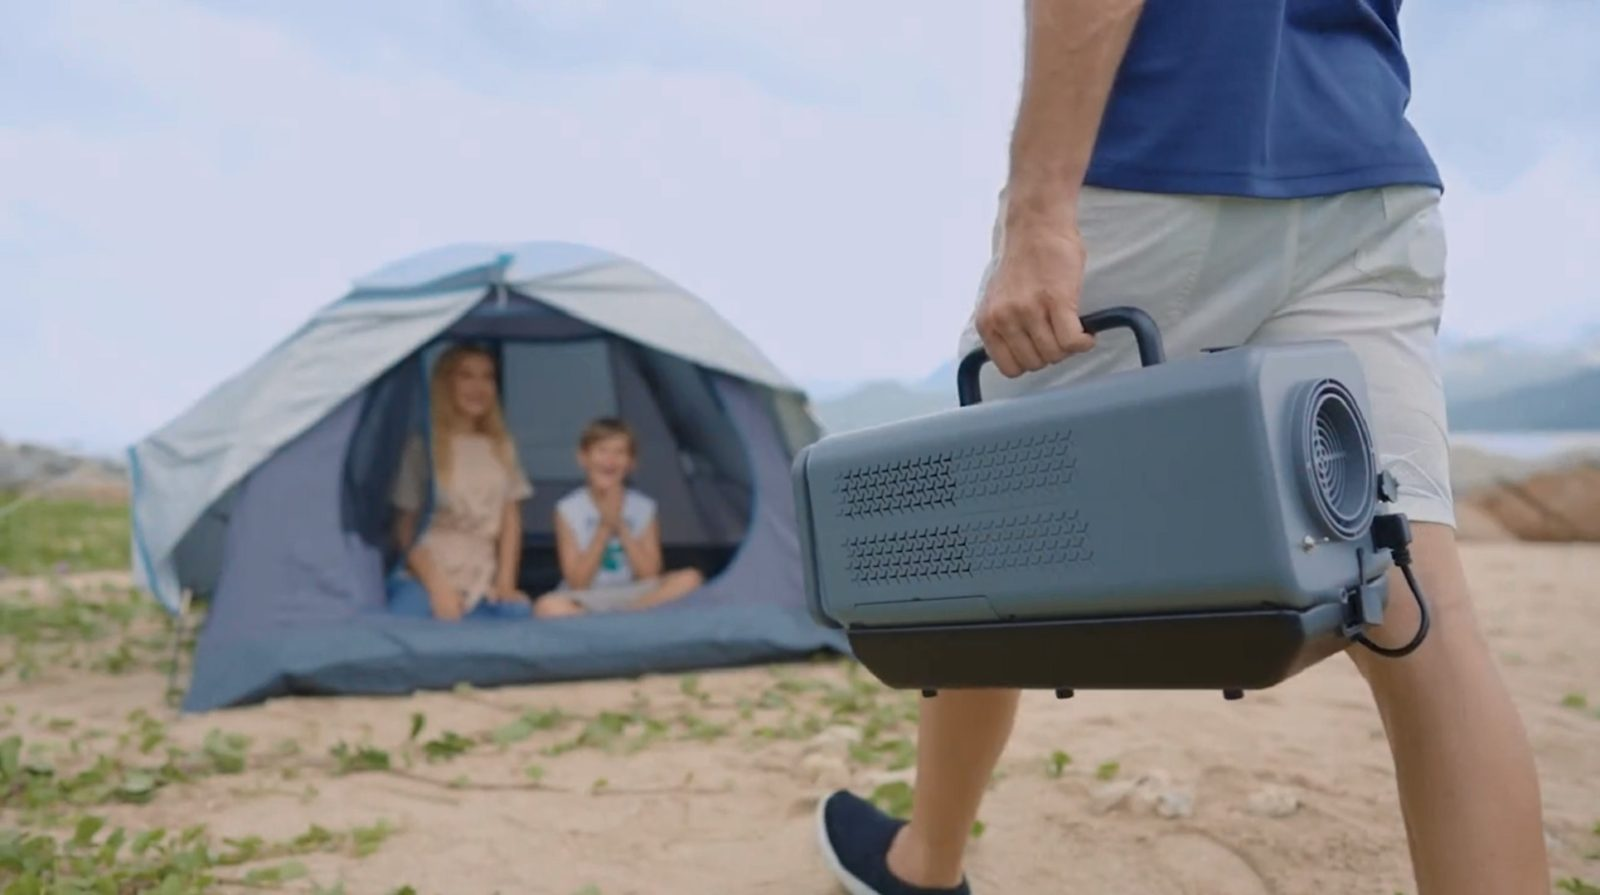 portable-air-conditioner-has-it-all,-also-works-as-a-flashlight-and-a-bluetooth-speaker